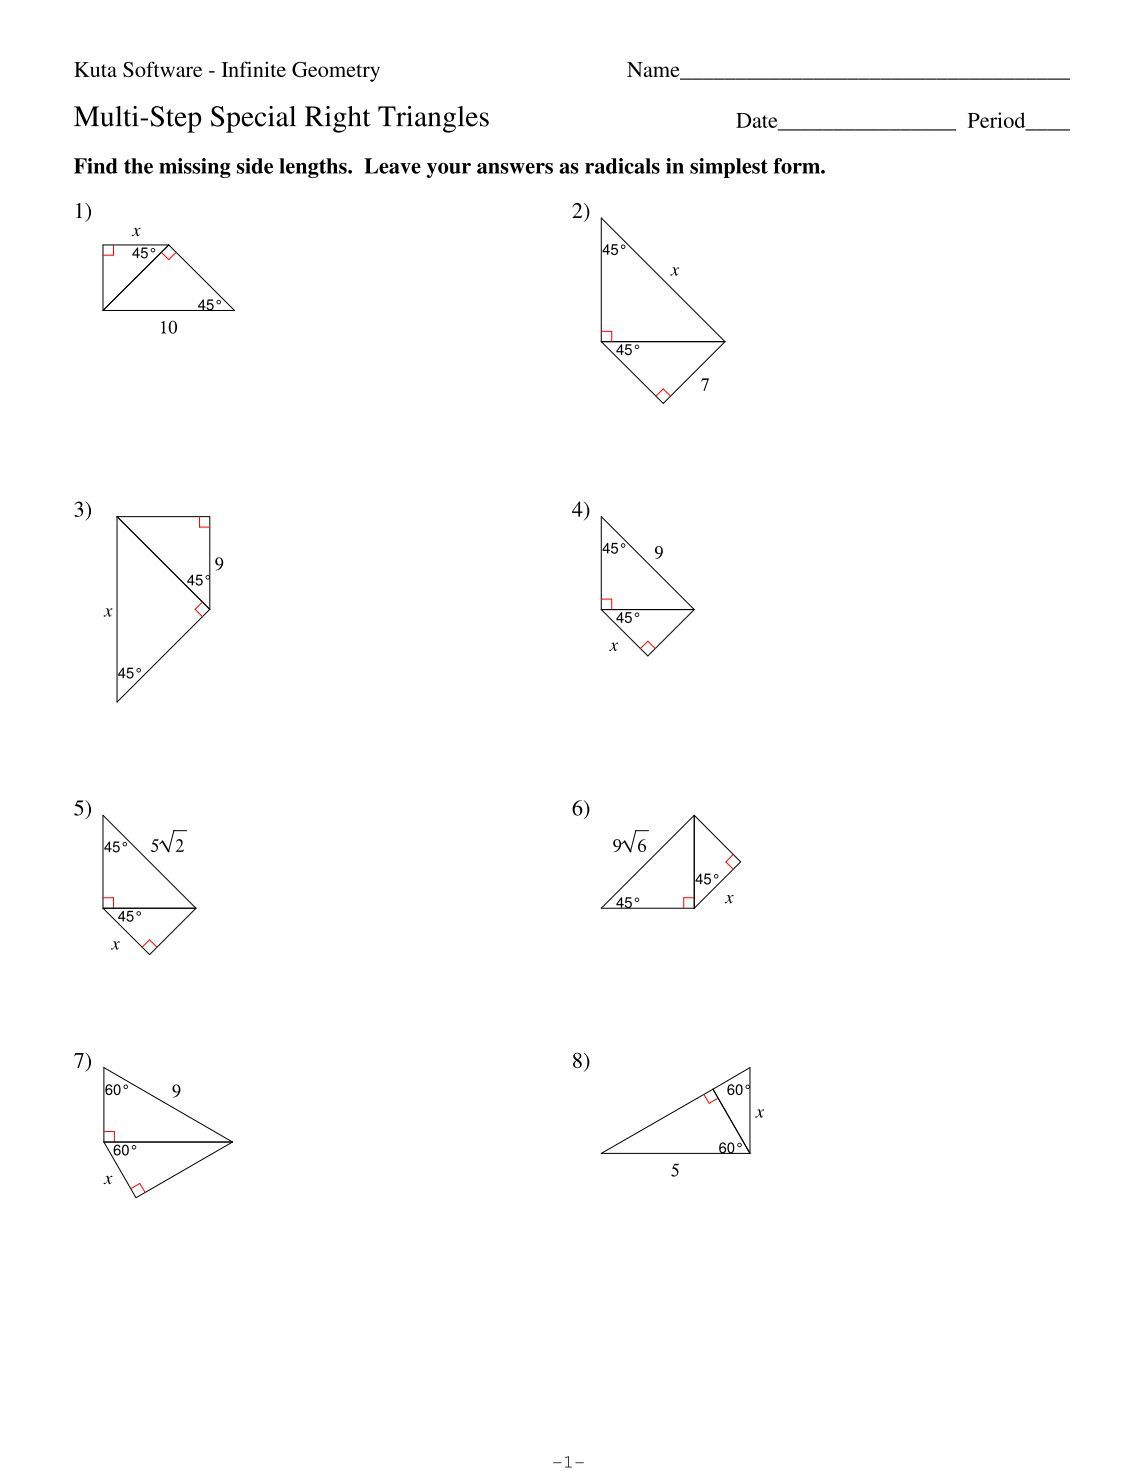 Worksheet 4 Special 30 60 90 Triangles Answersmath plane means – 45 45 90 Triangle Worksheet